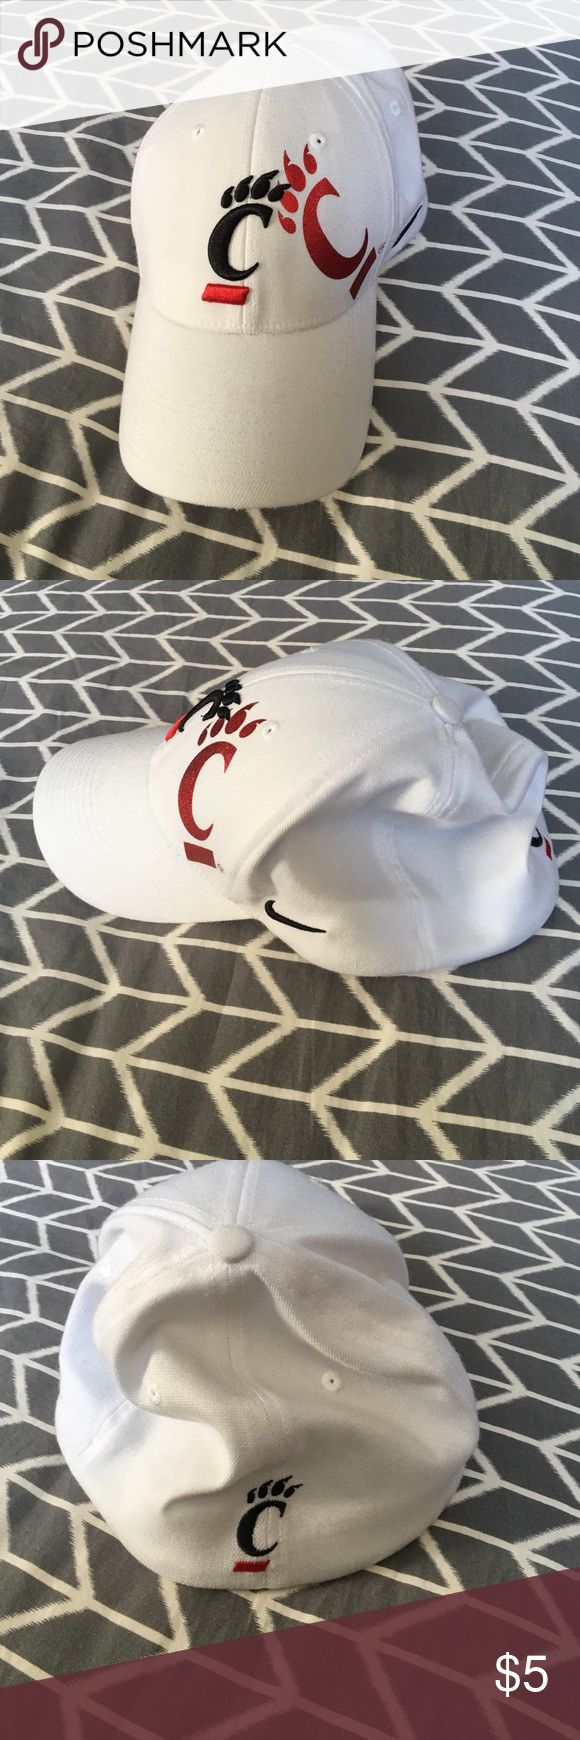 Men's Cincinnati Bearcats Fitted Baseball Cap Nike Men's Cinci bearcats White hat with logo Nike Accessories Hats